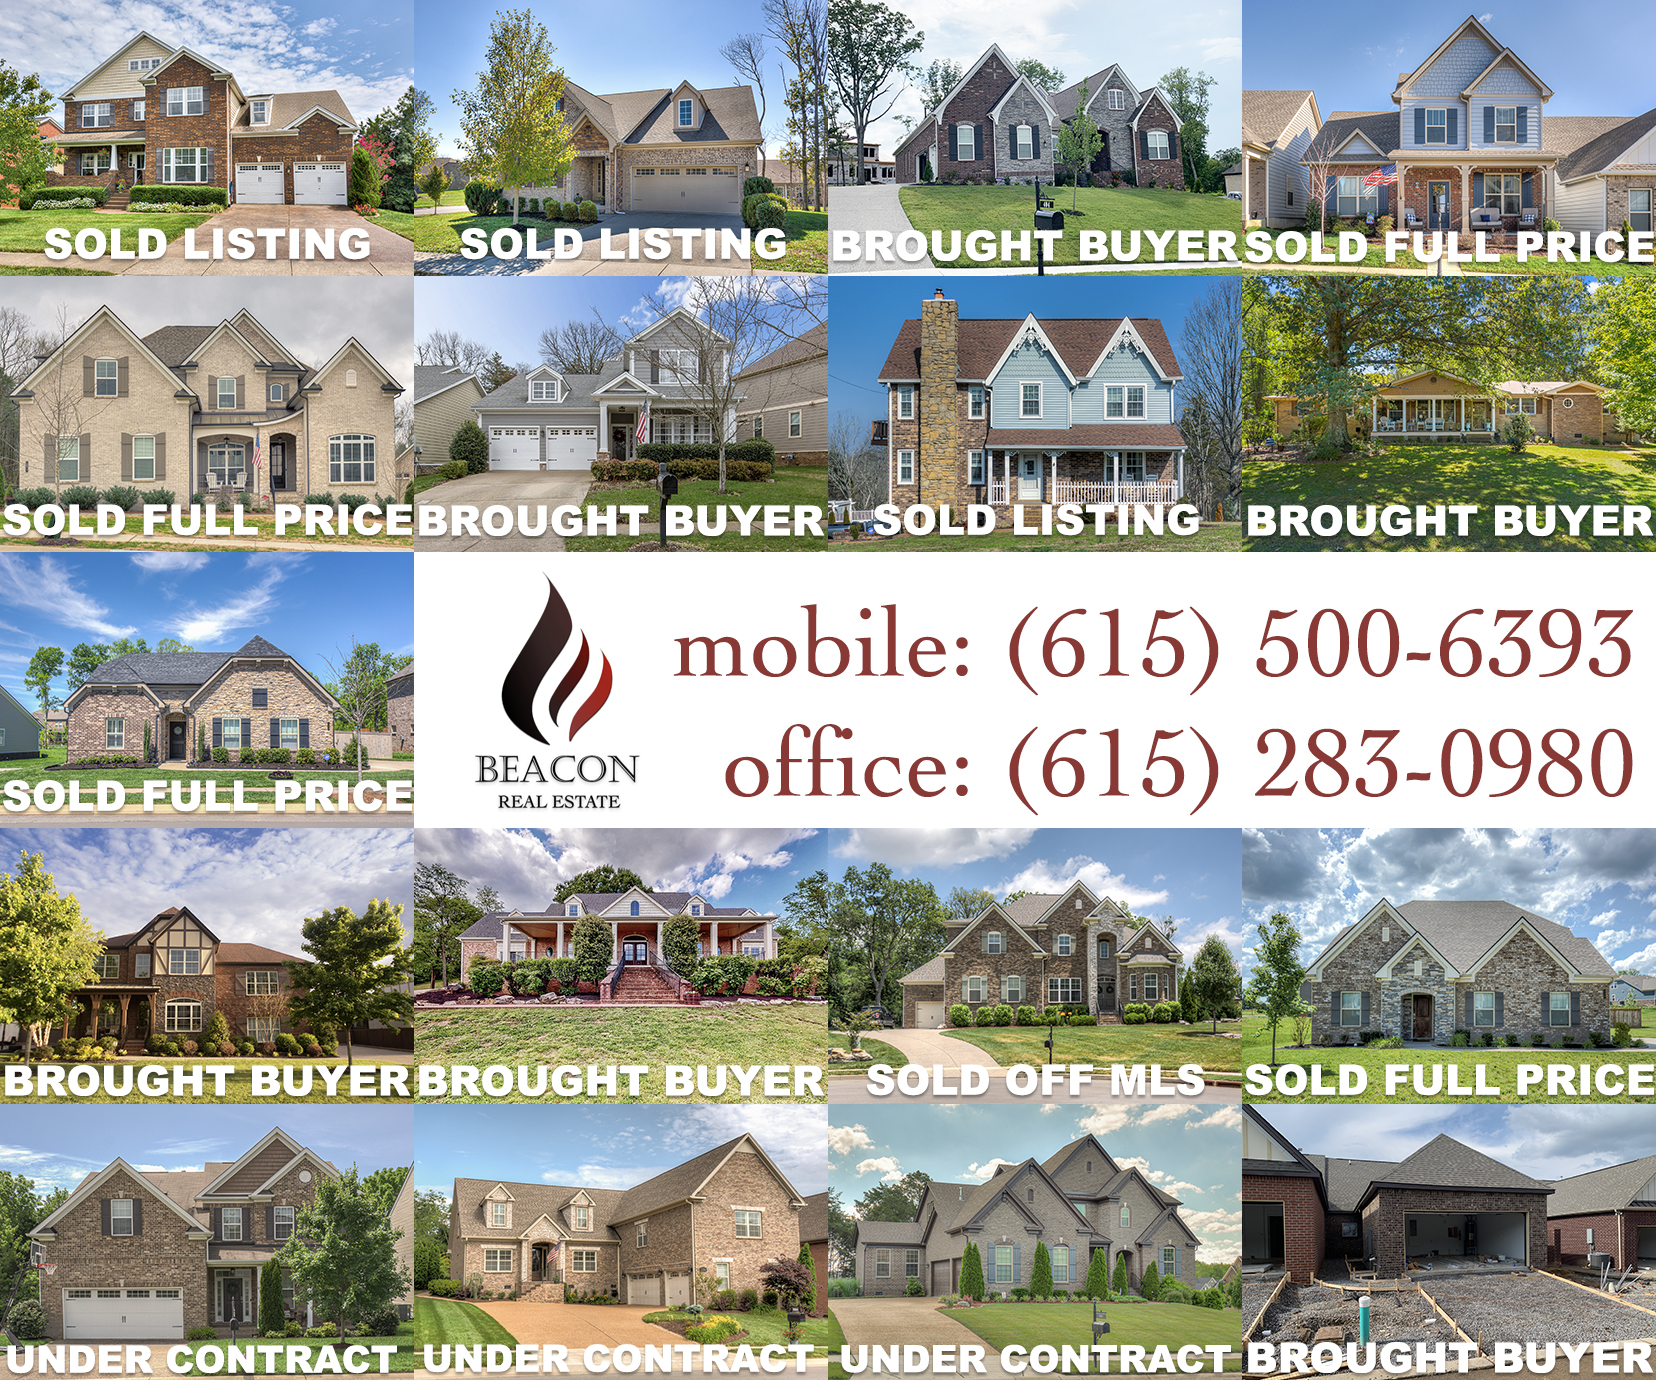 Flint Adam - Nolensville 2020 Home Sales Through June